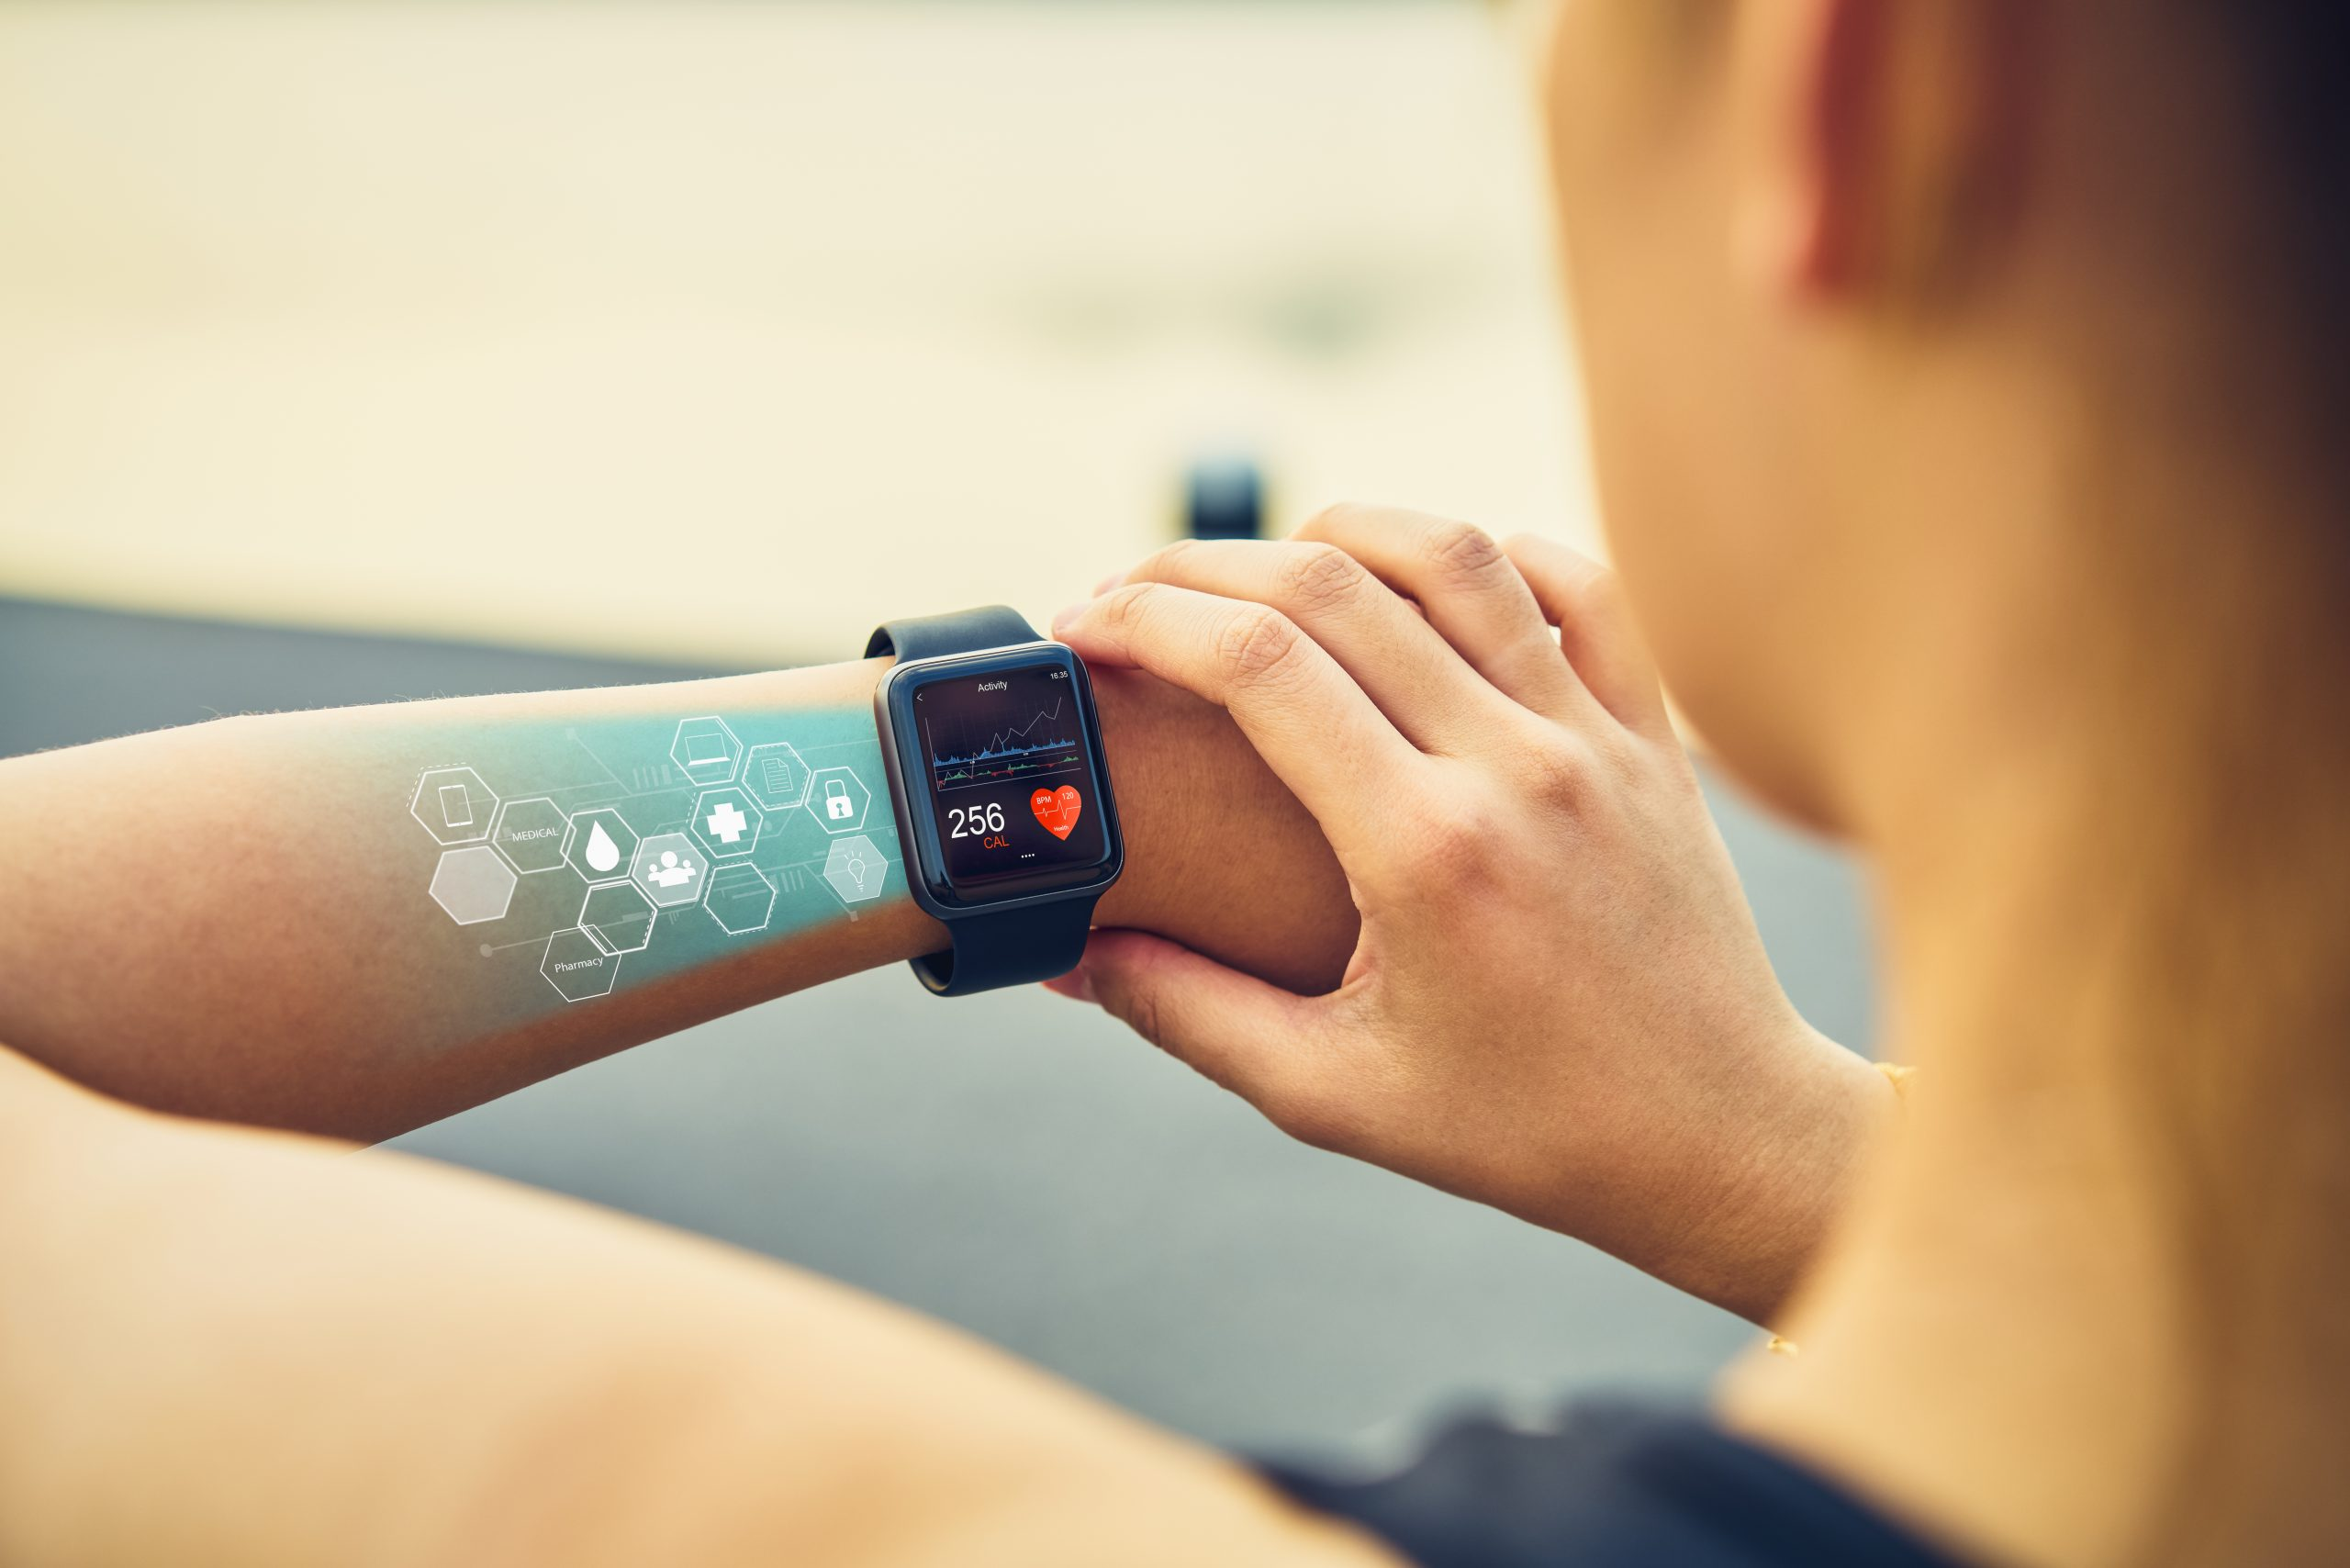 Smartwatch is one of medical wearable devices